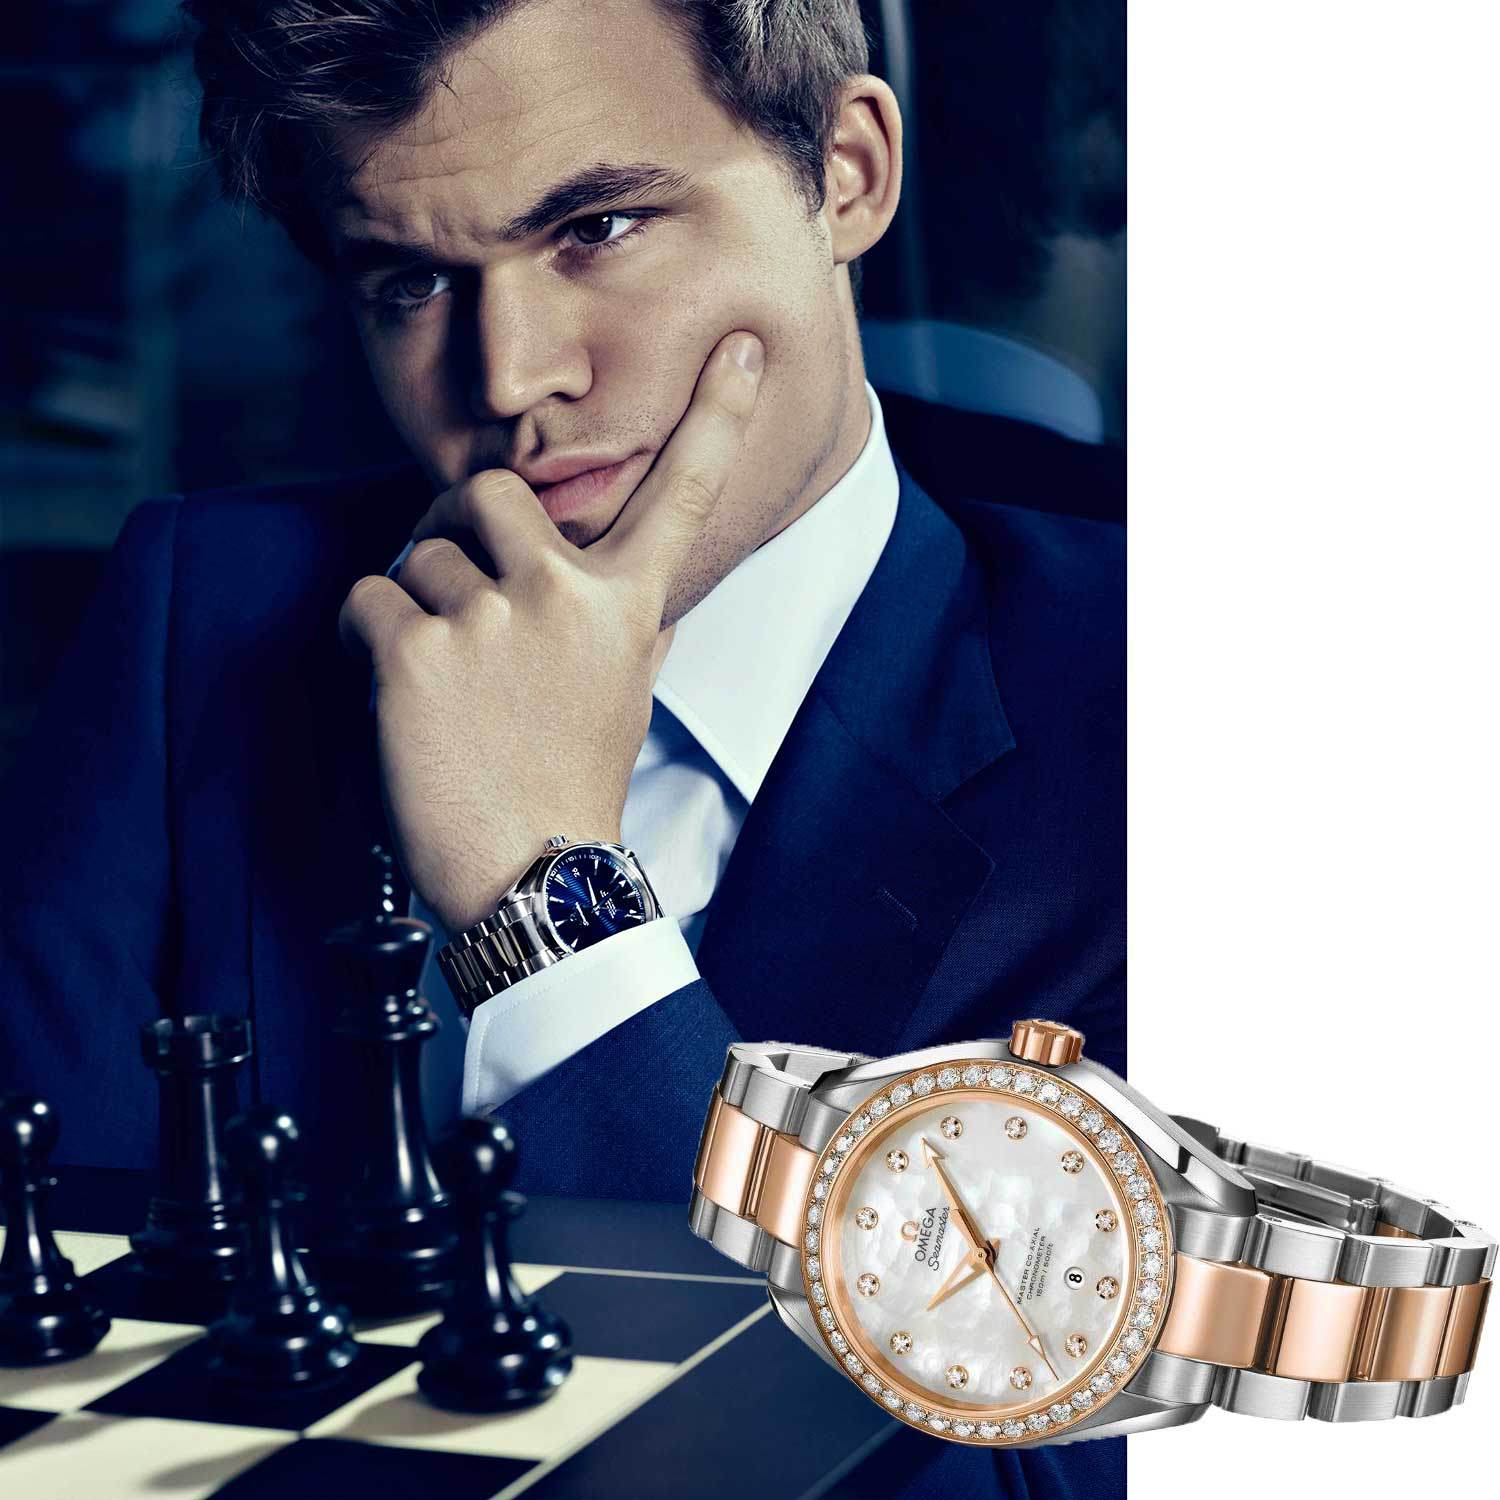 2_-magnus-carlsen-chess-player-with-the-seamaster-aqua-terra-master-co-axial.jpg